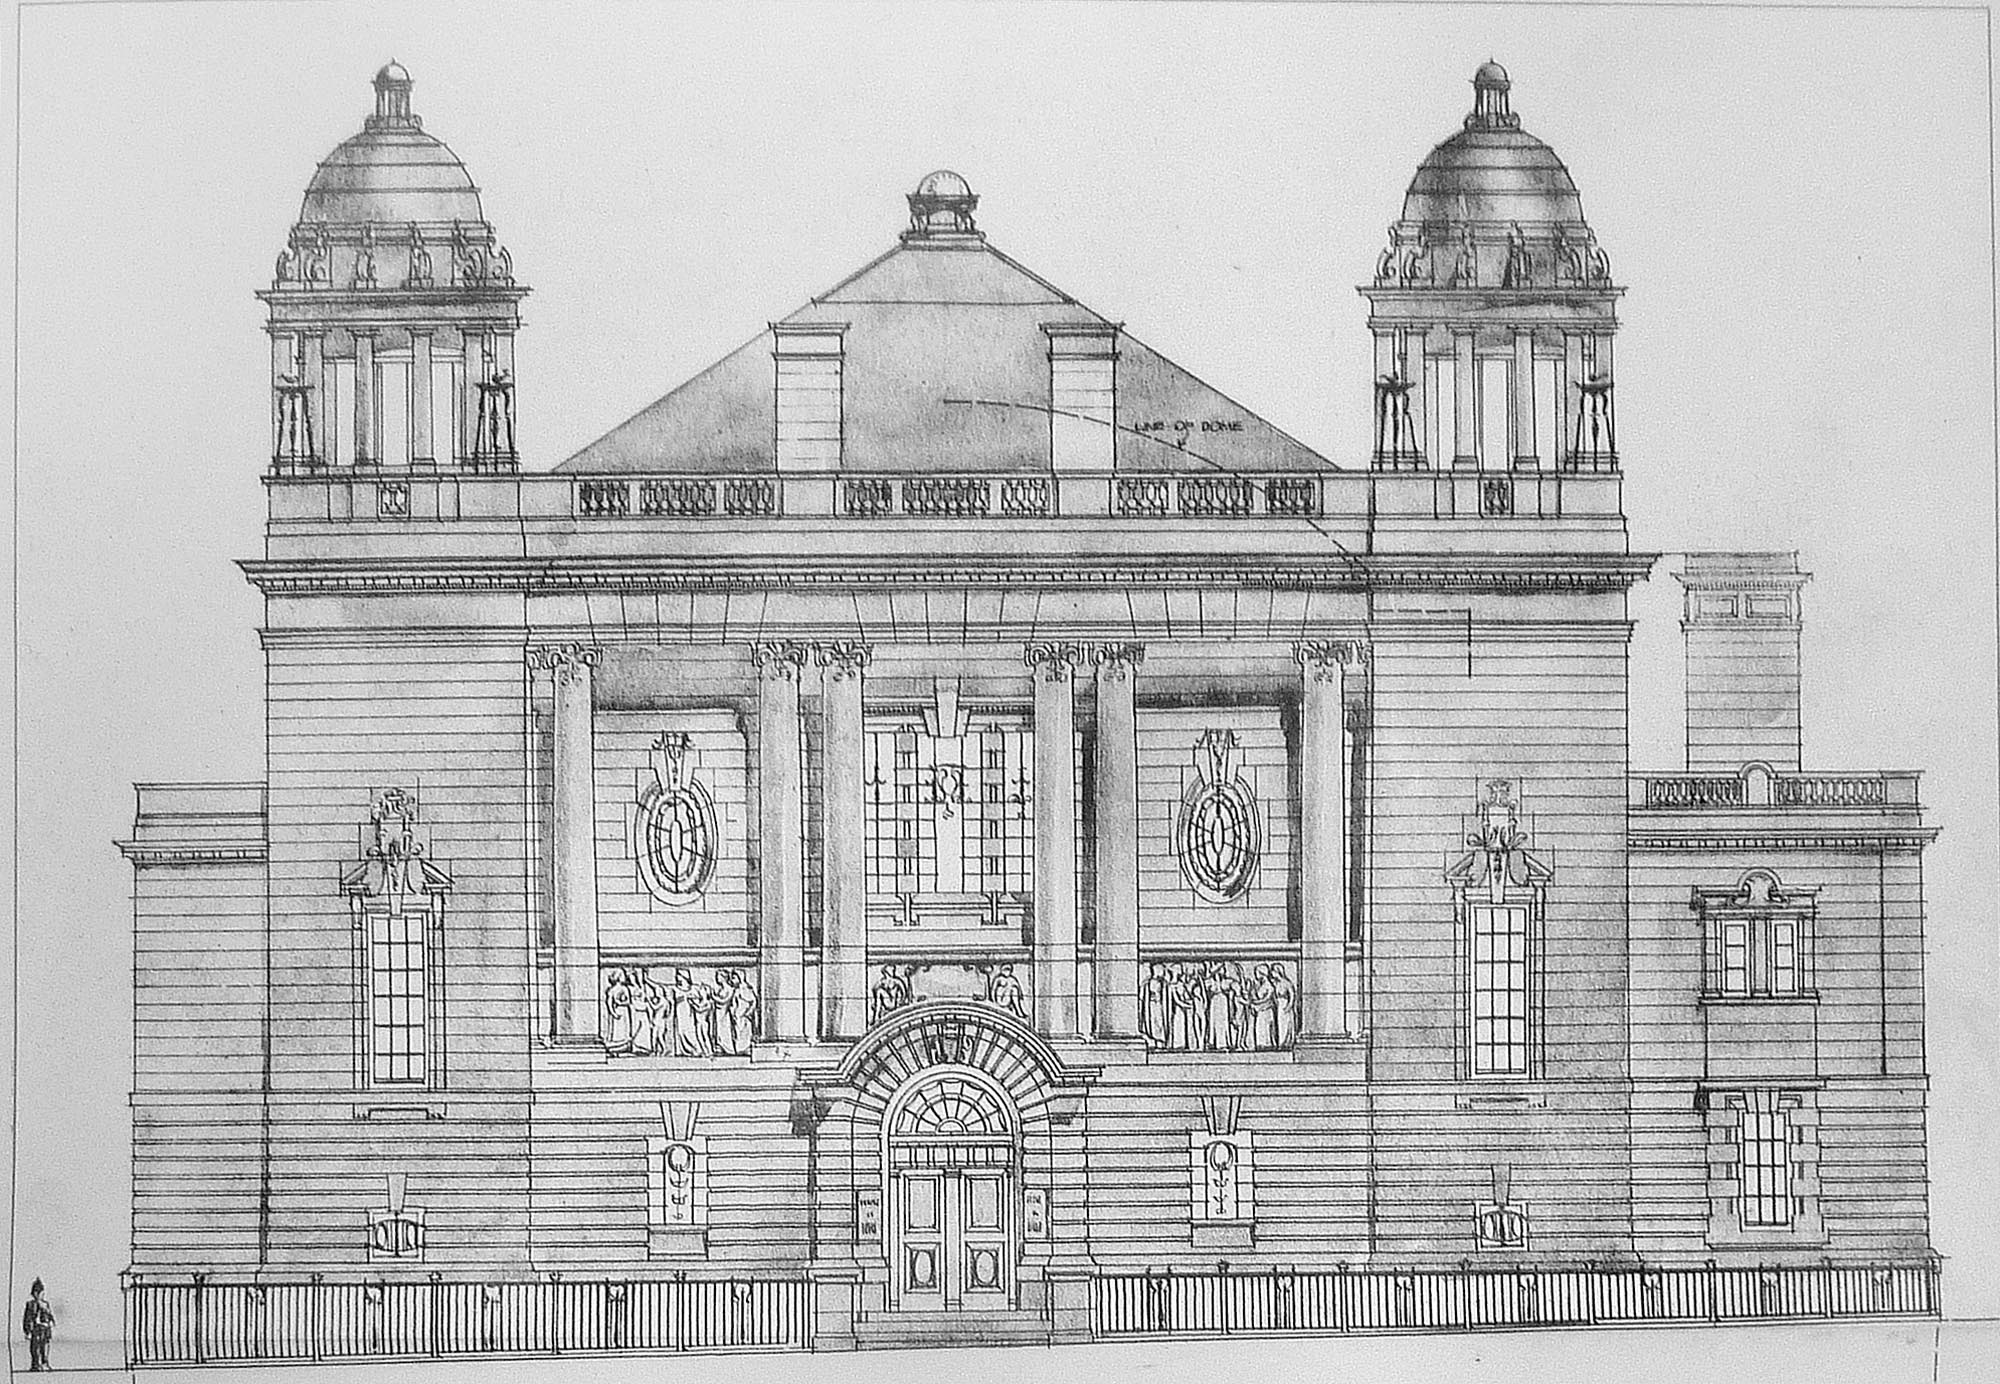 Architectural plans for the building - Leicestershire Record Office